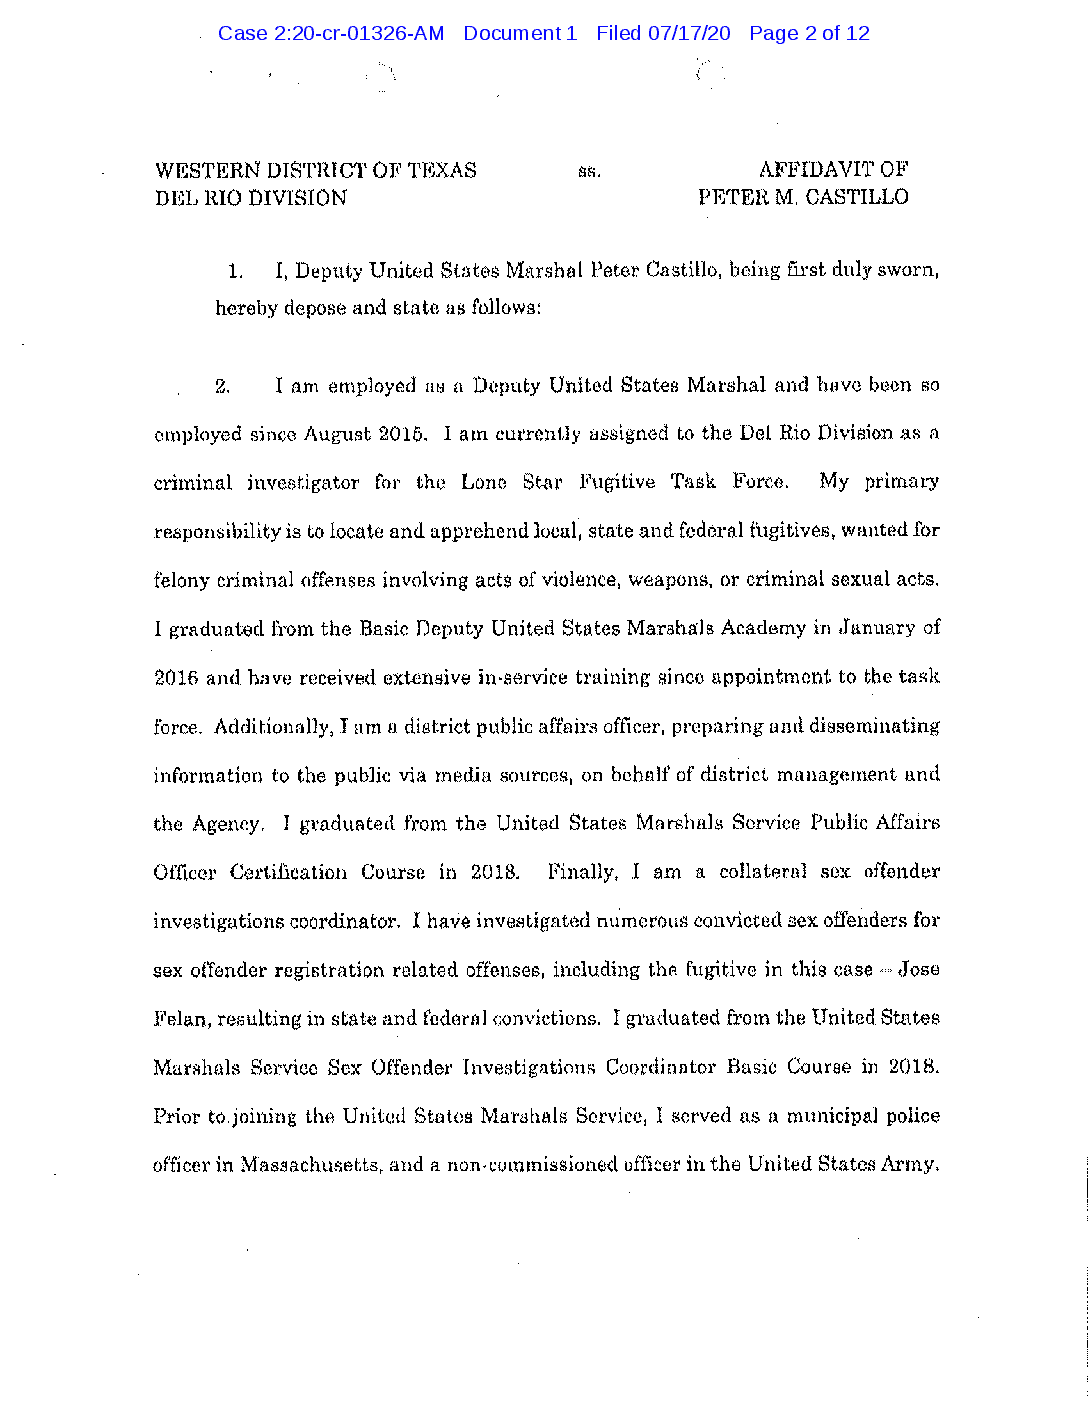 Page 2 of 12